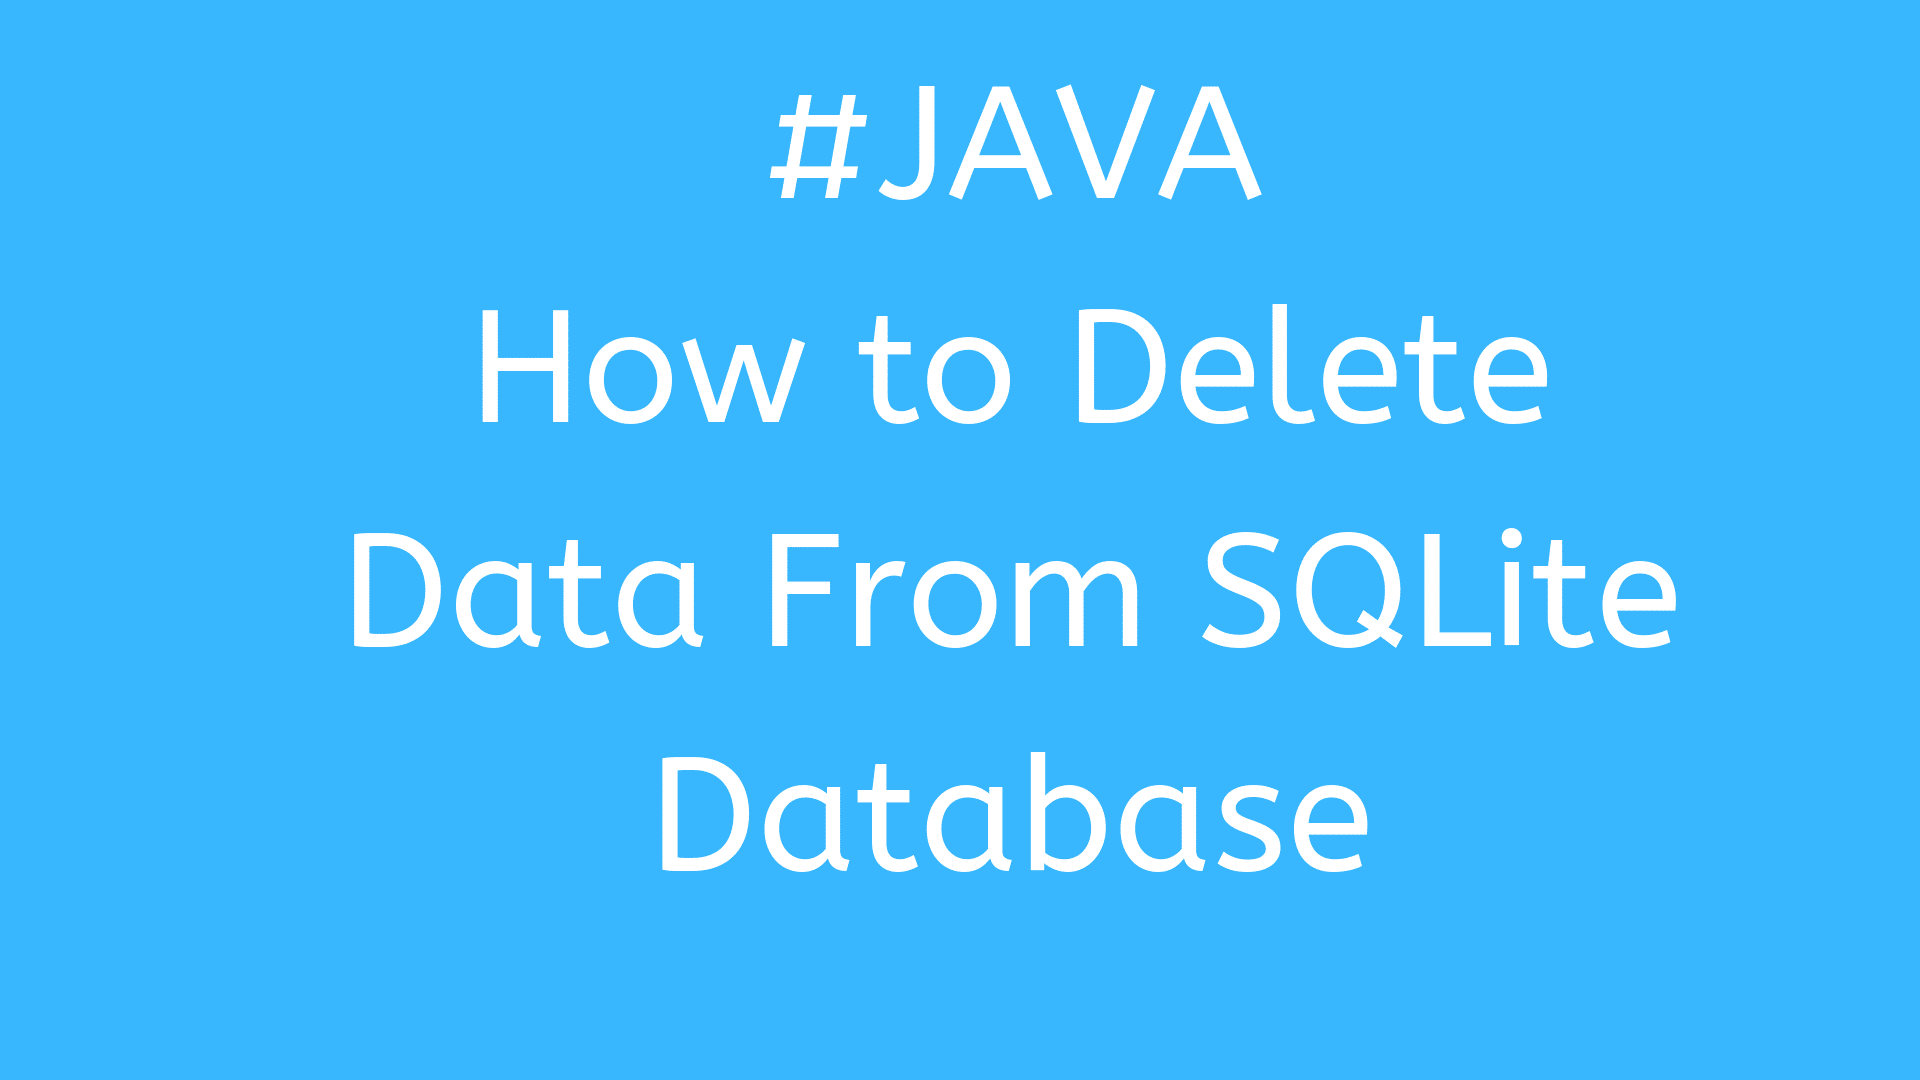 JAVA - How to Delete Data From SQLite Database